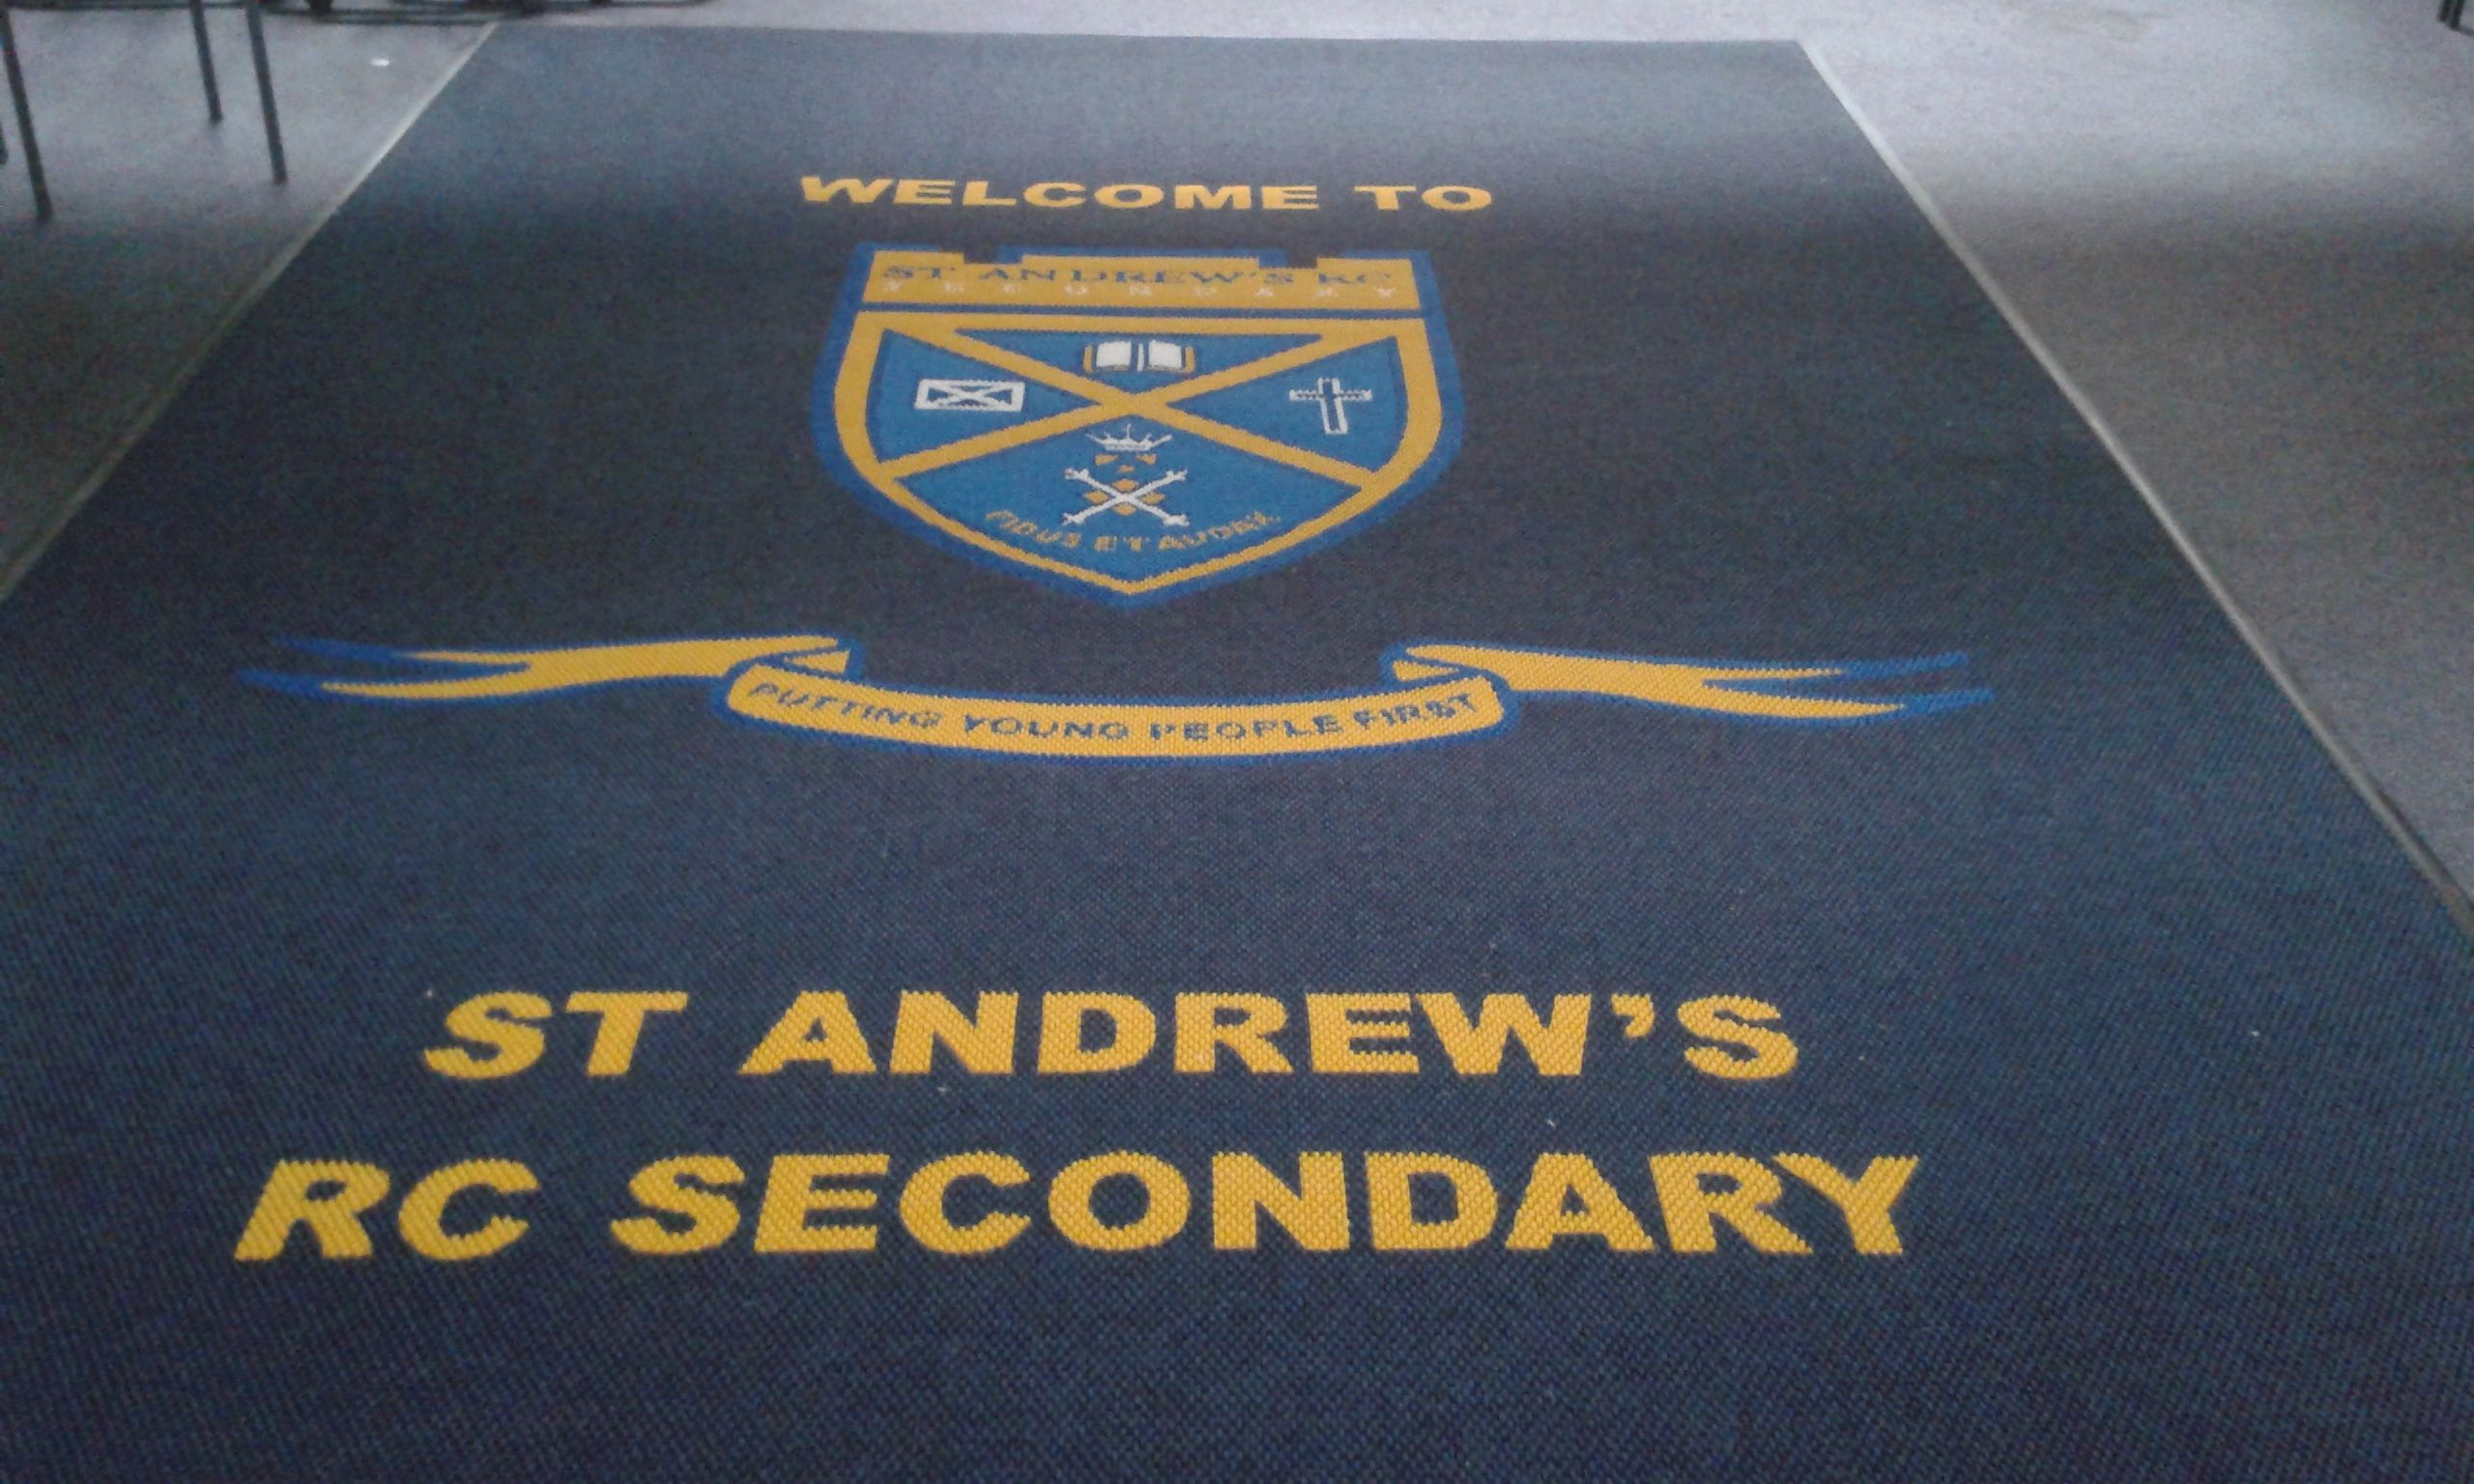 St Andrew's RC Secondary